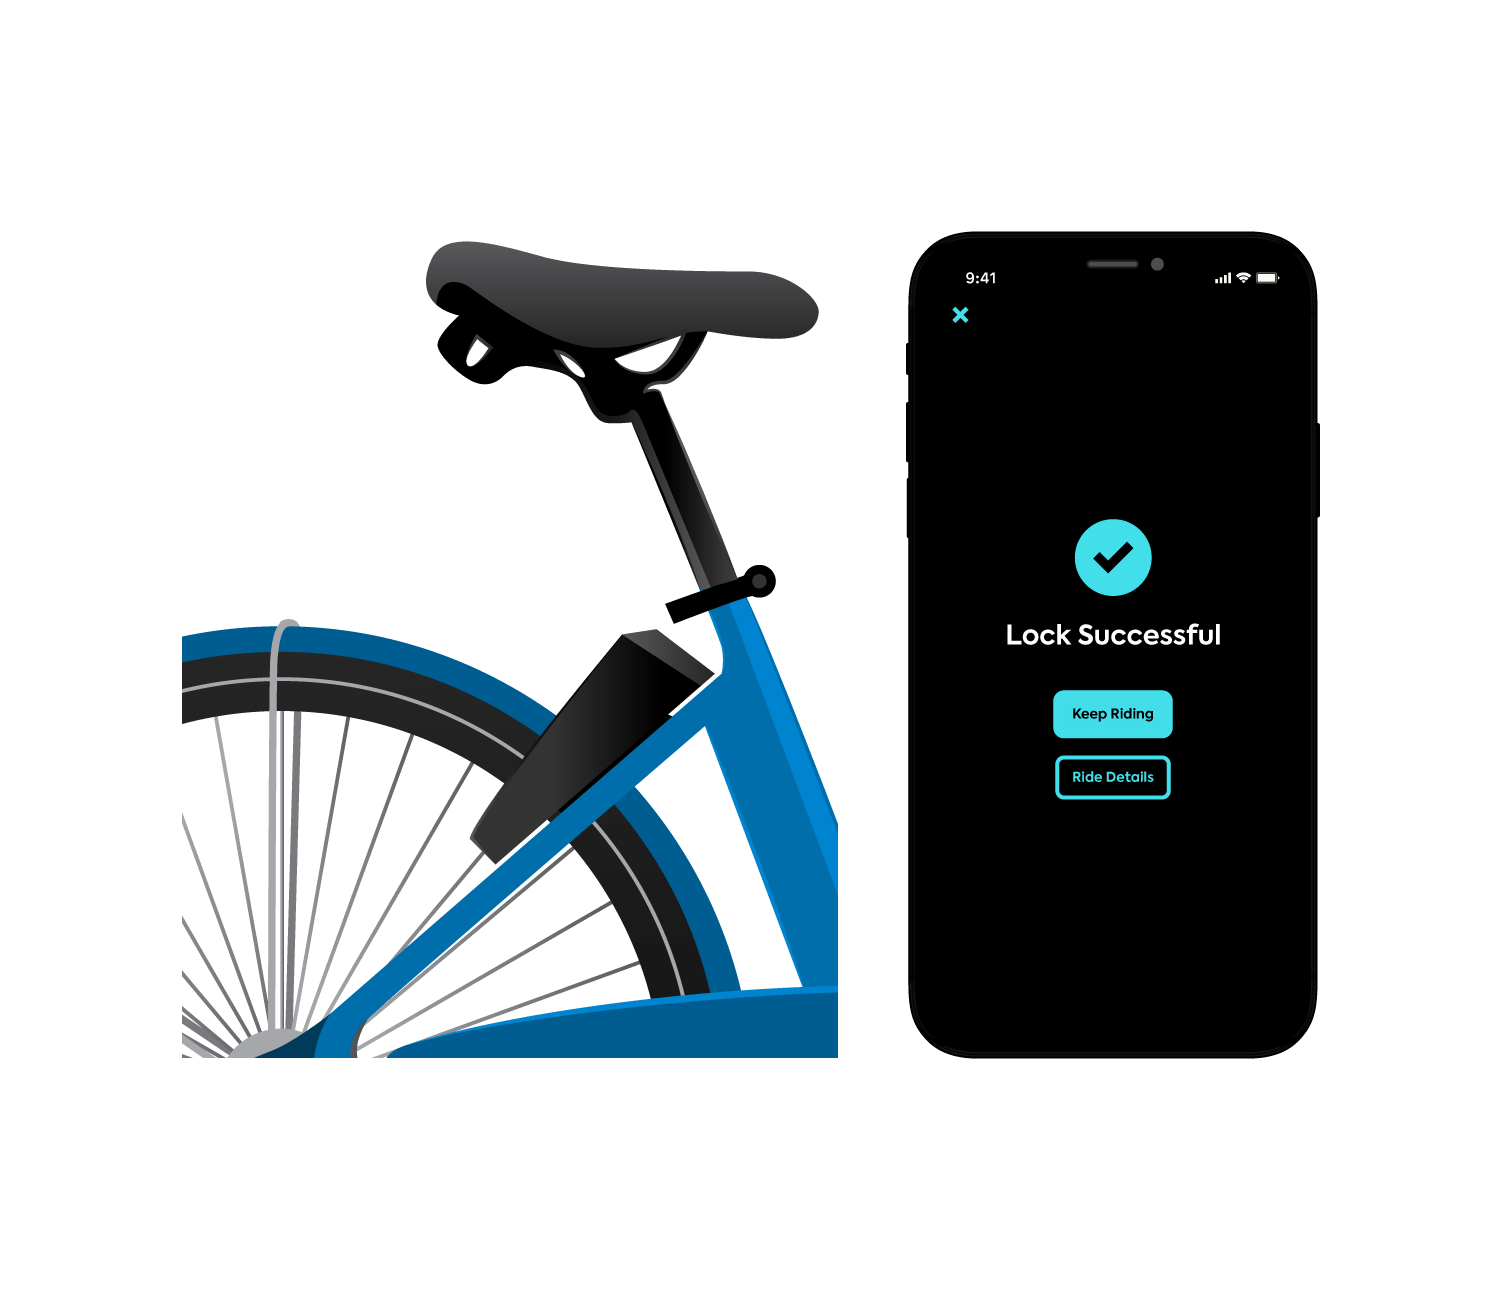 park your VeloGO bike safely and lock it with the HOPR Transit App